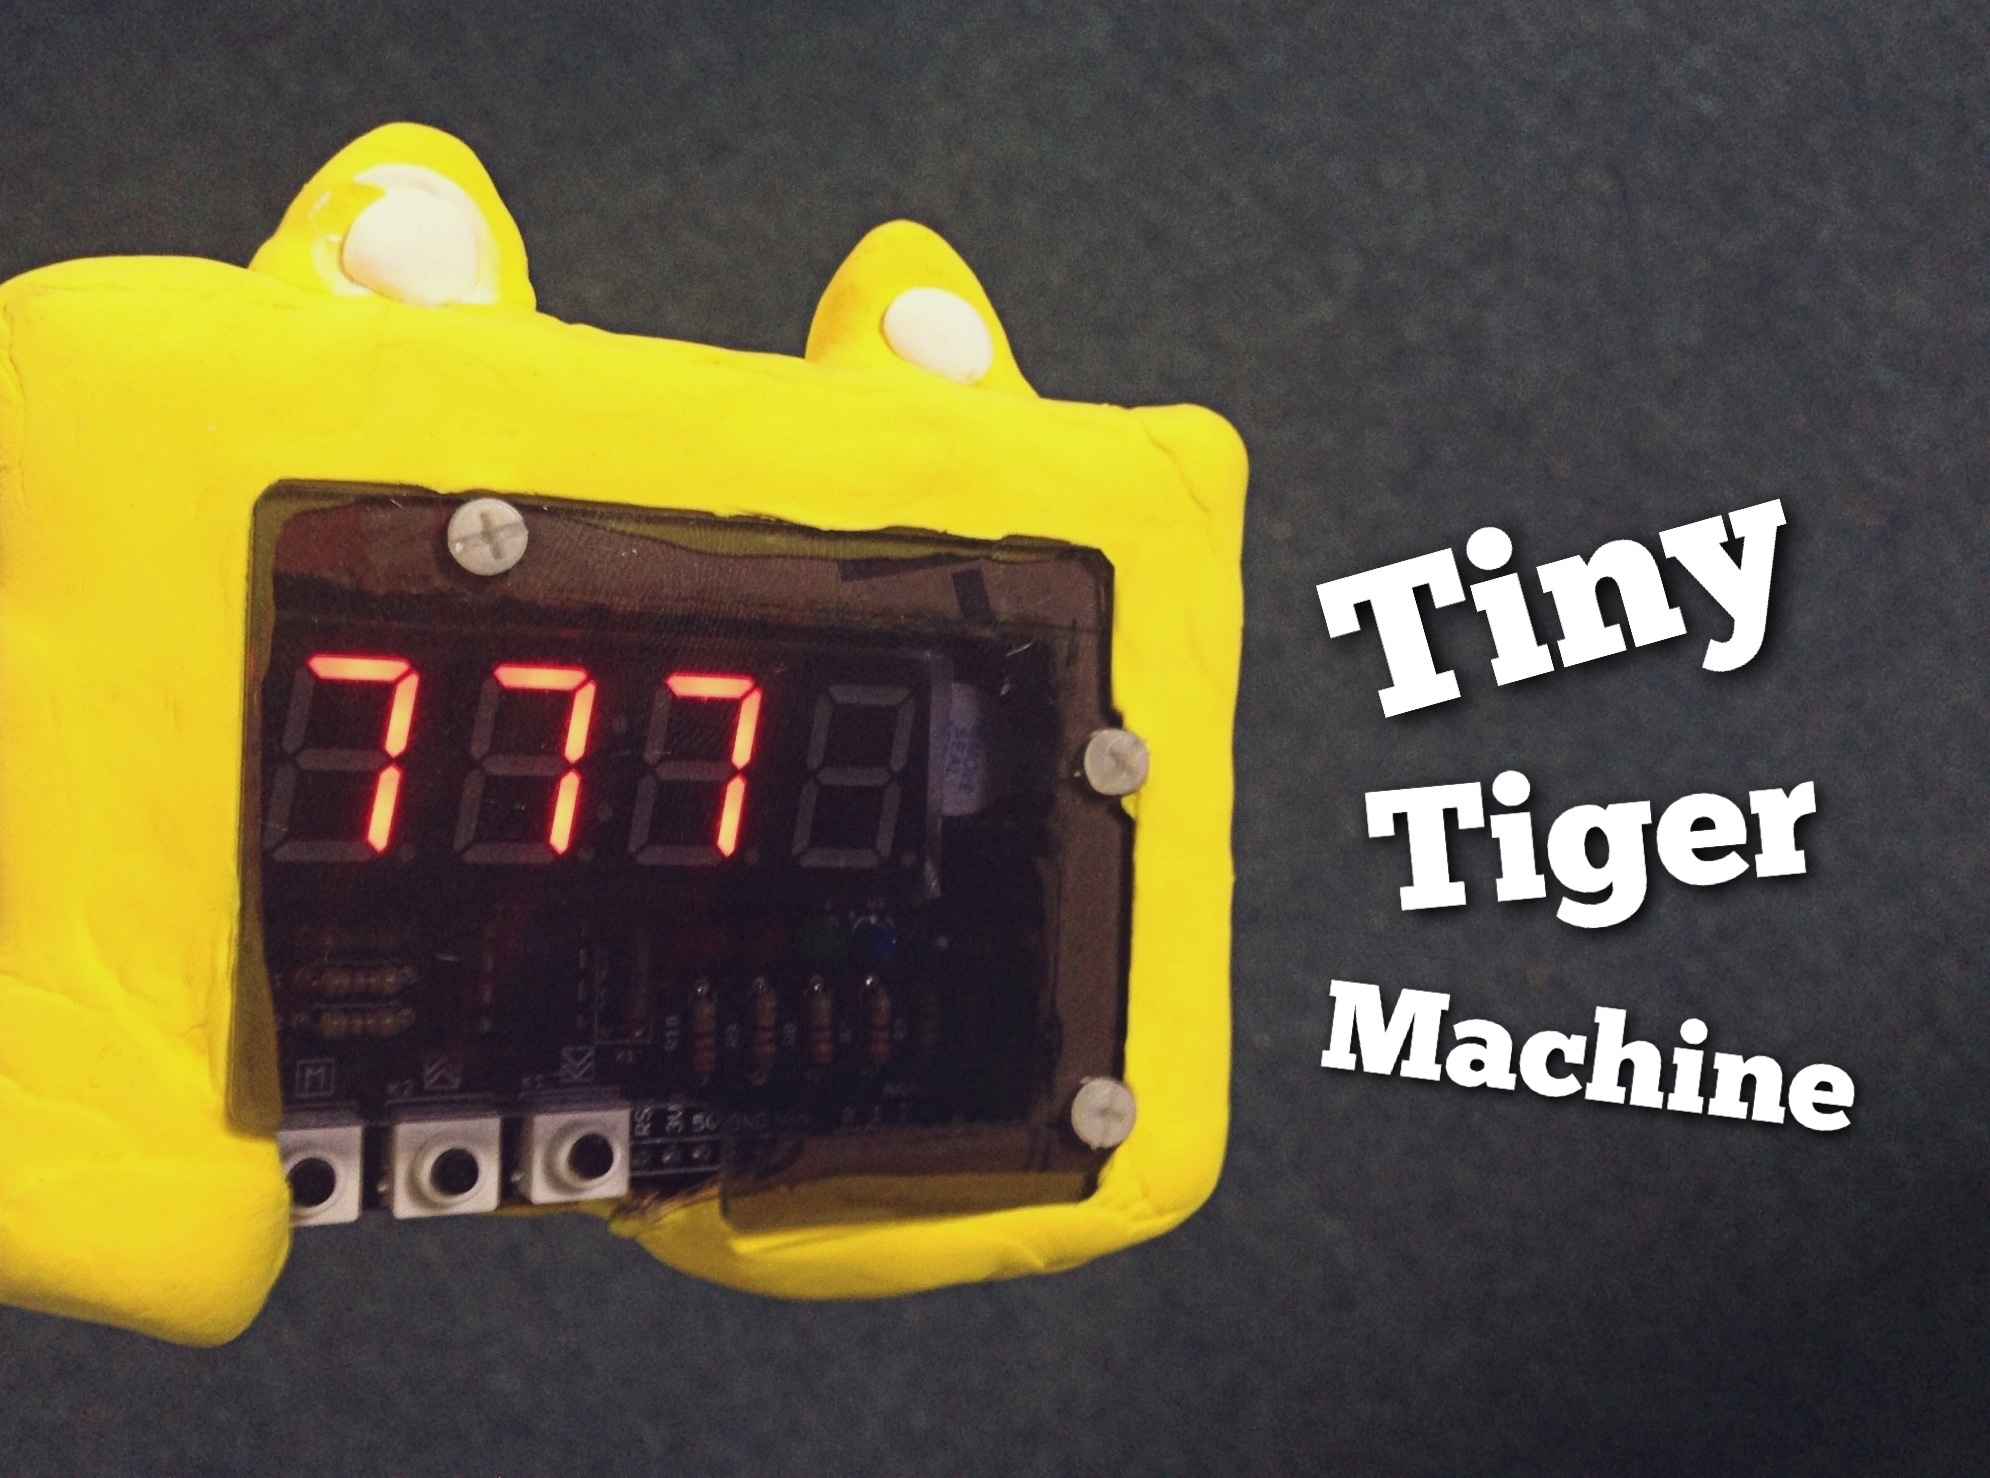 How to Make Your Tiny Tiger Machine